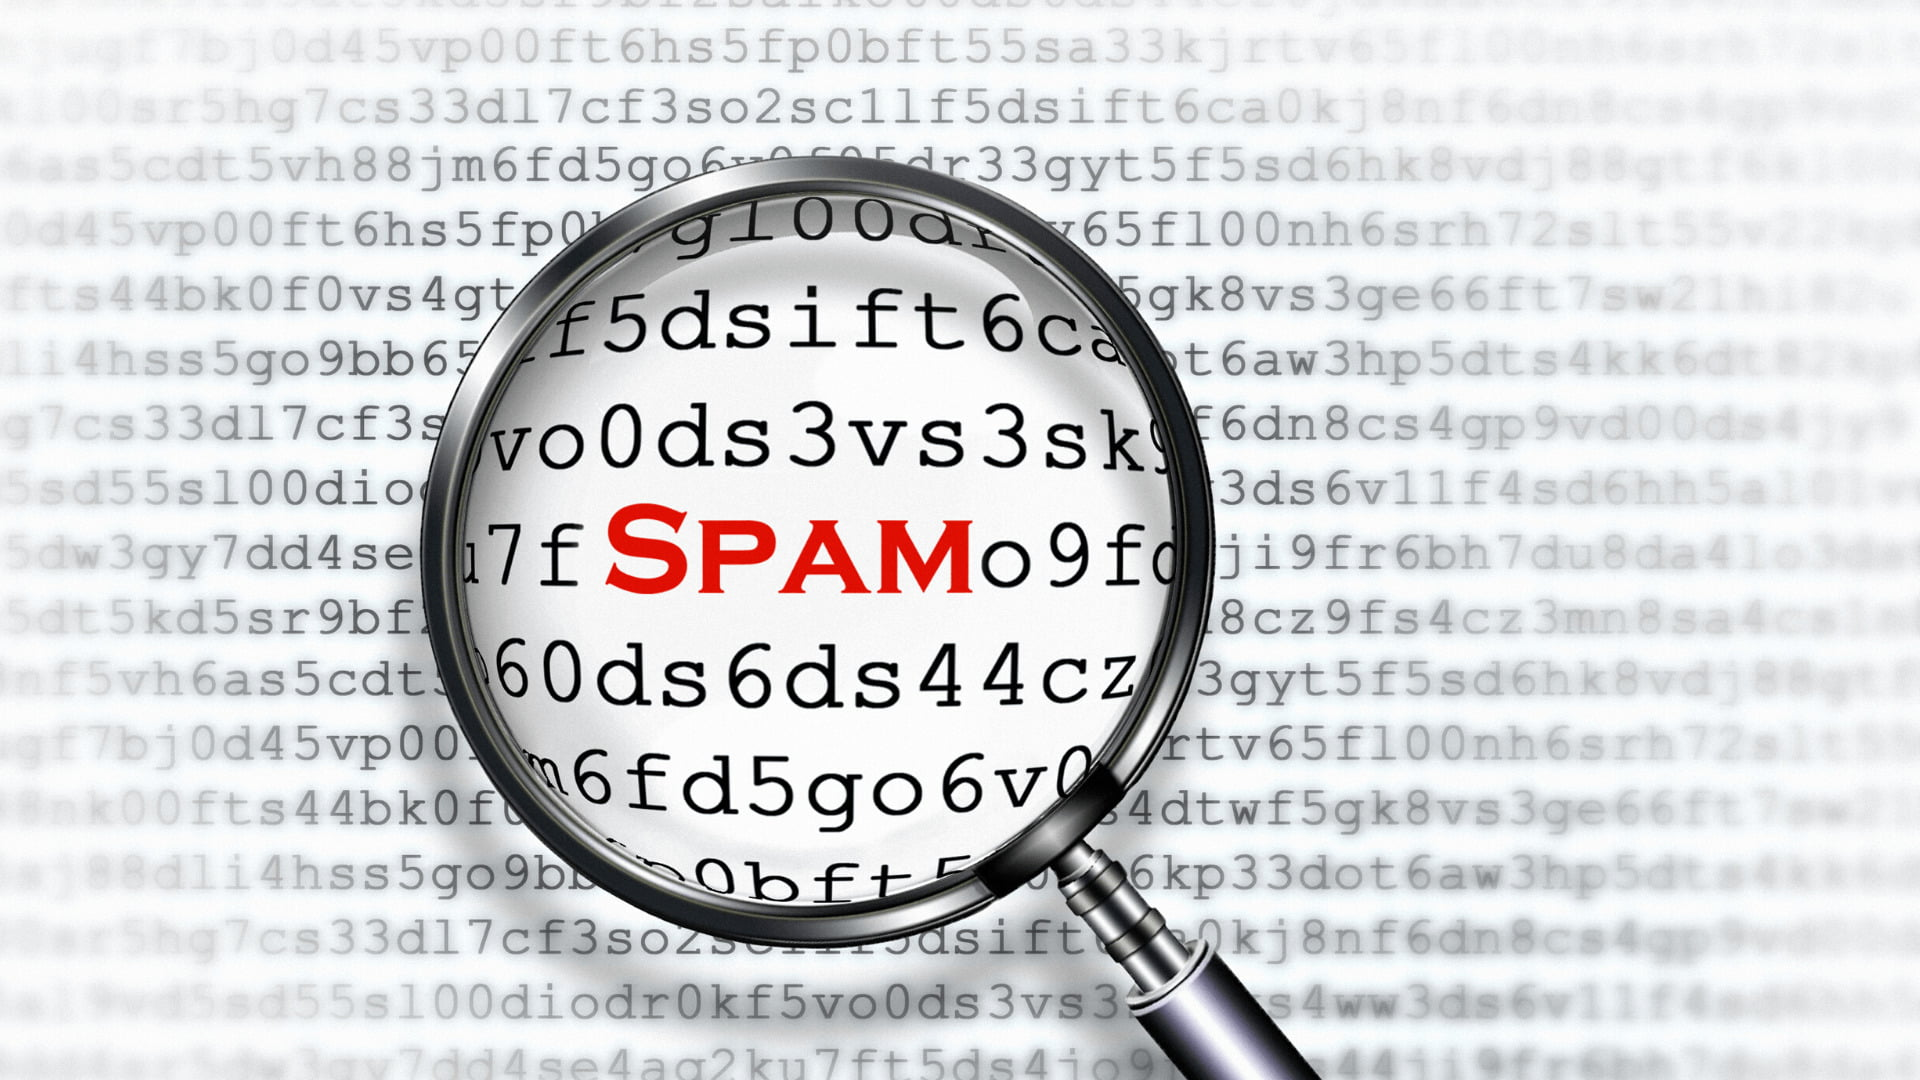 Prevent emails from going to spam